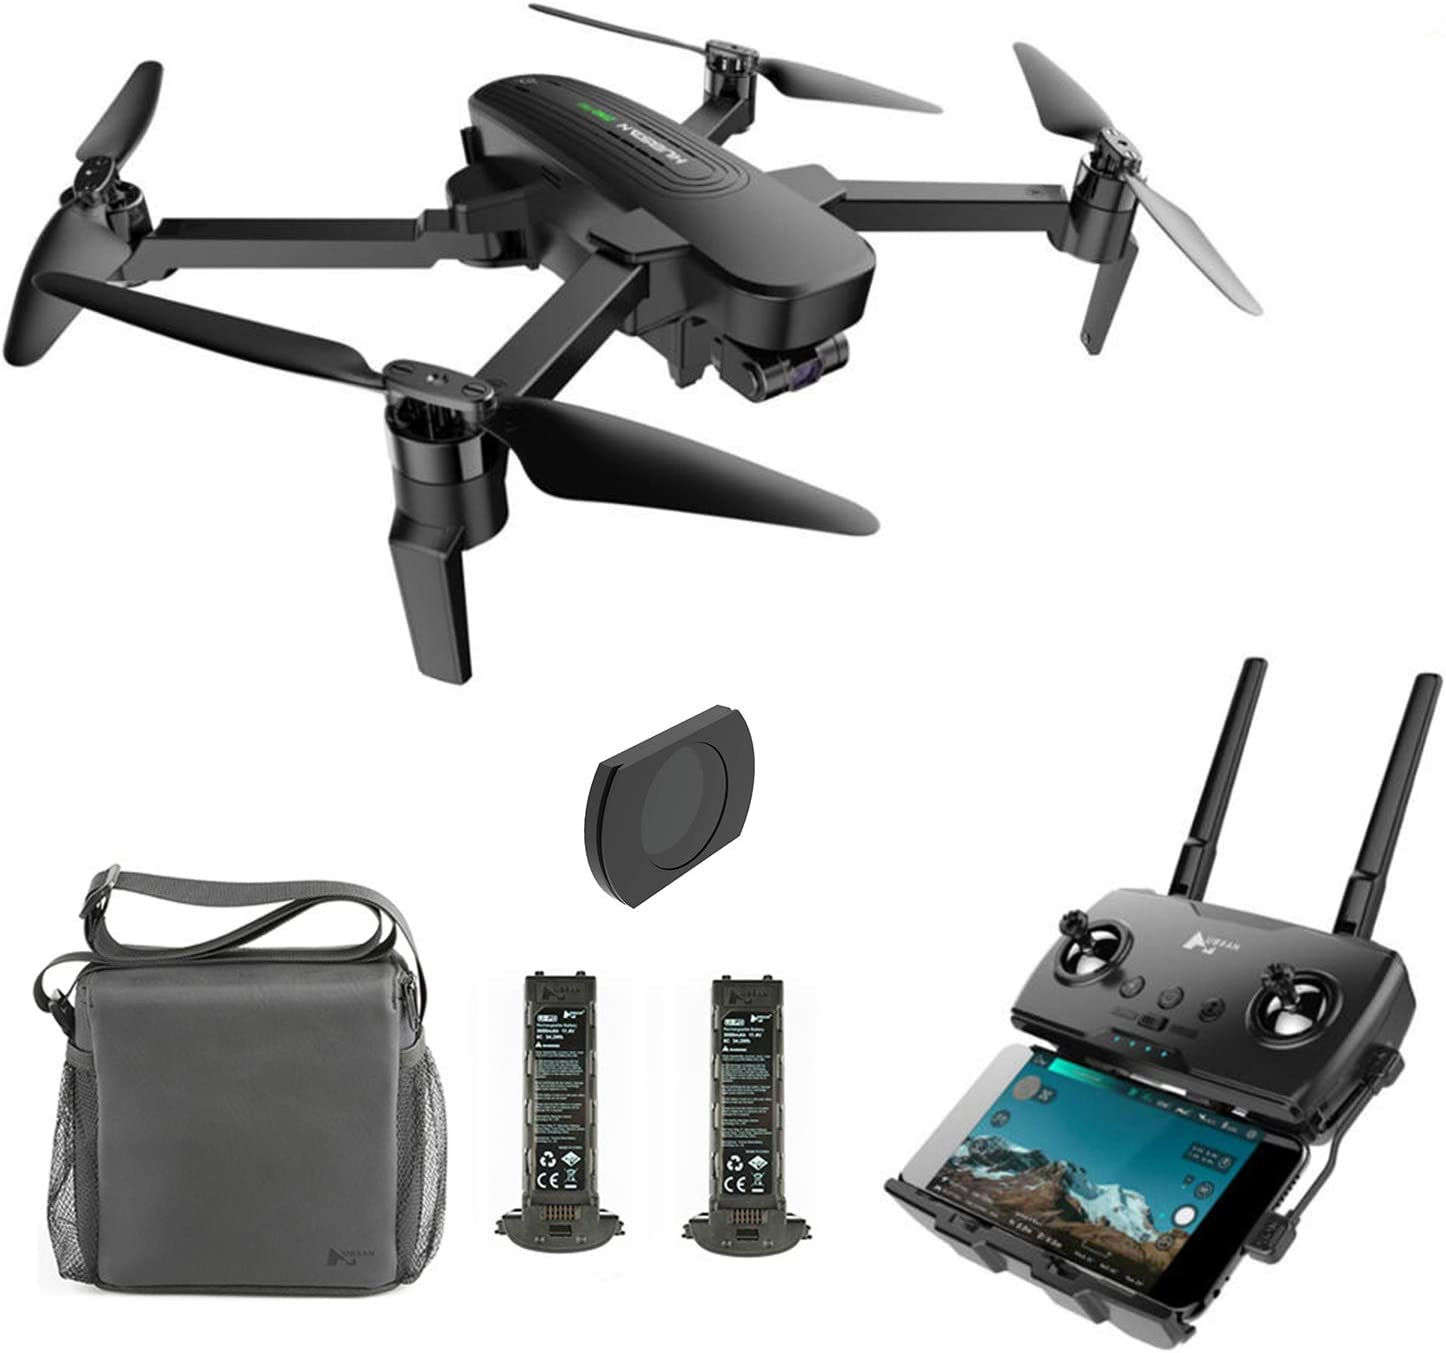 Amazon Com Hubsan Zino Pro 4k Drone With 3 Aix Gimbal Gps Quadcopter Live Video 5g Wifi 4km Fpv Drone Brushless For Beginners Camera Lens Filter And Two Batteries Included Toys Games